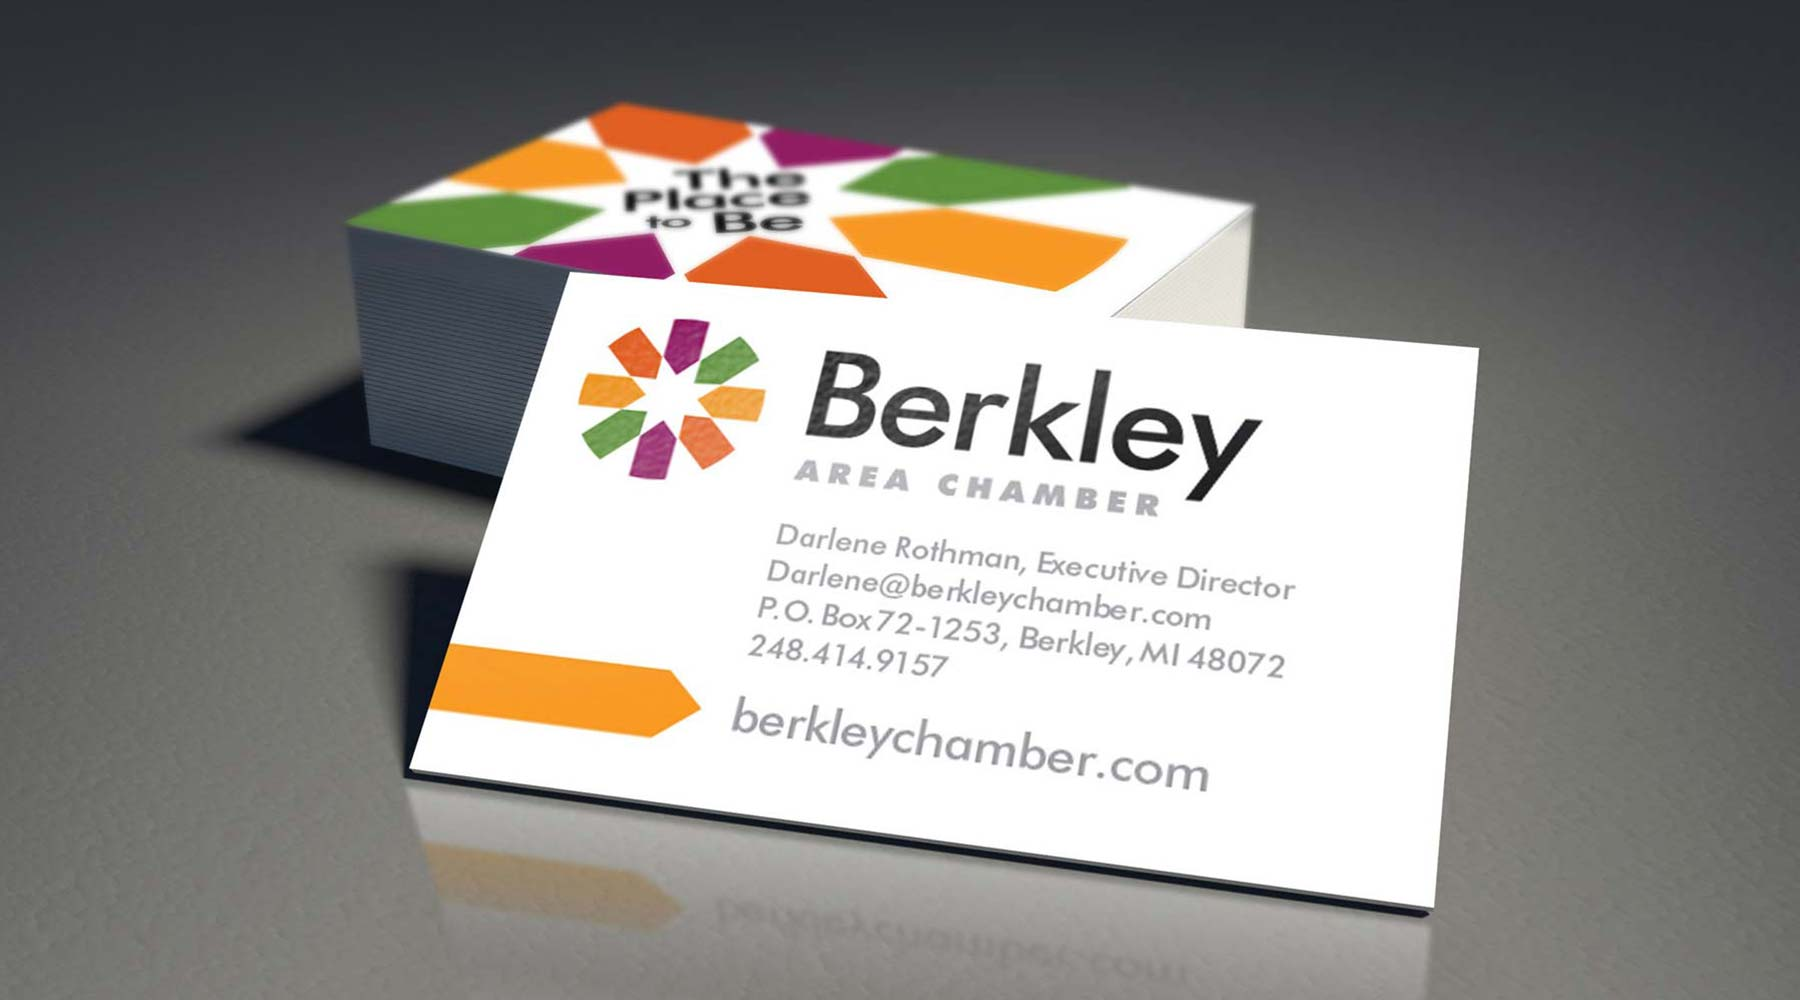 Berkley Chamber business cards